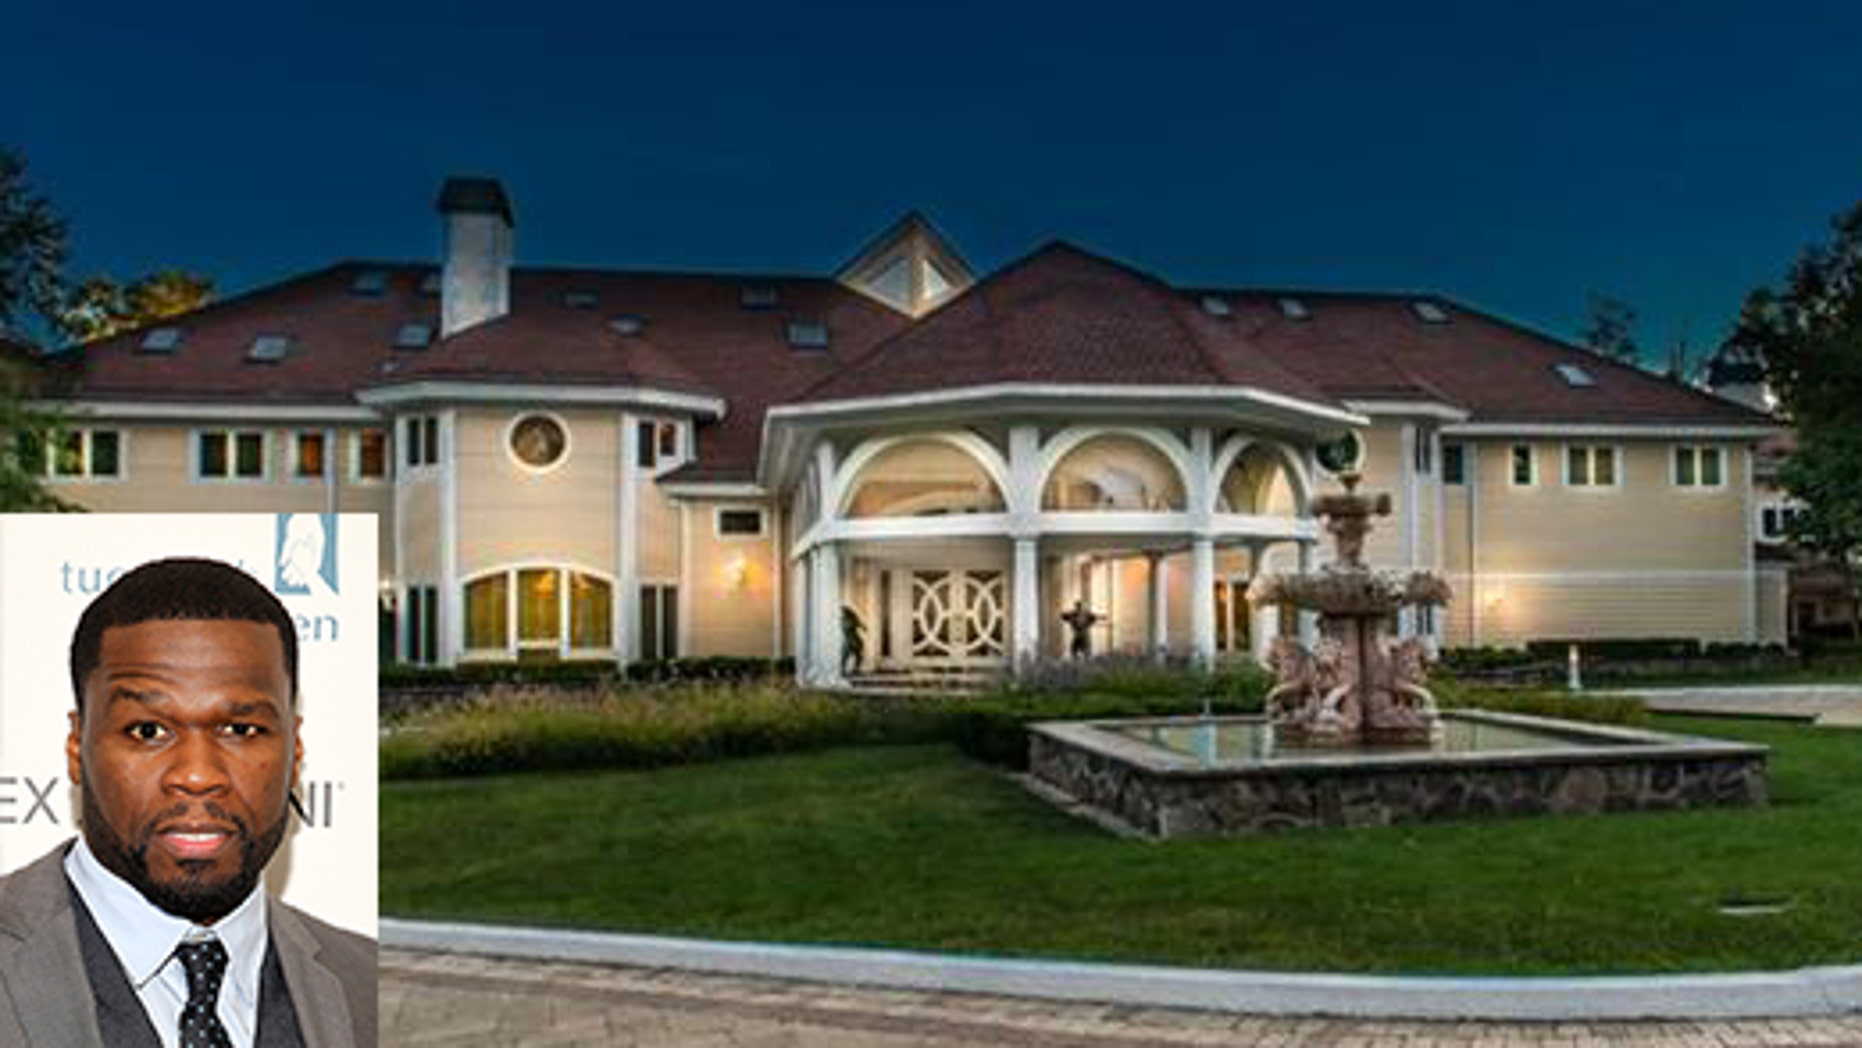 50 Cent's house in CT